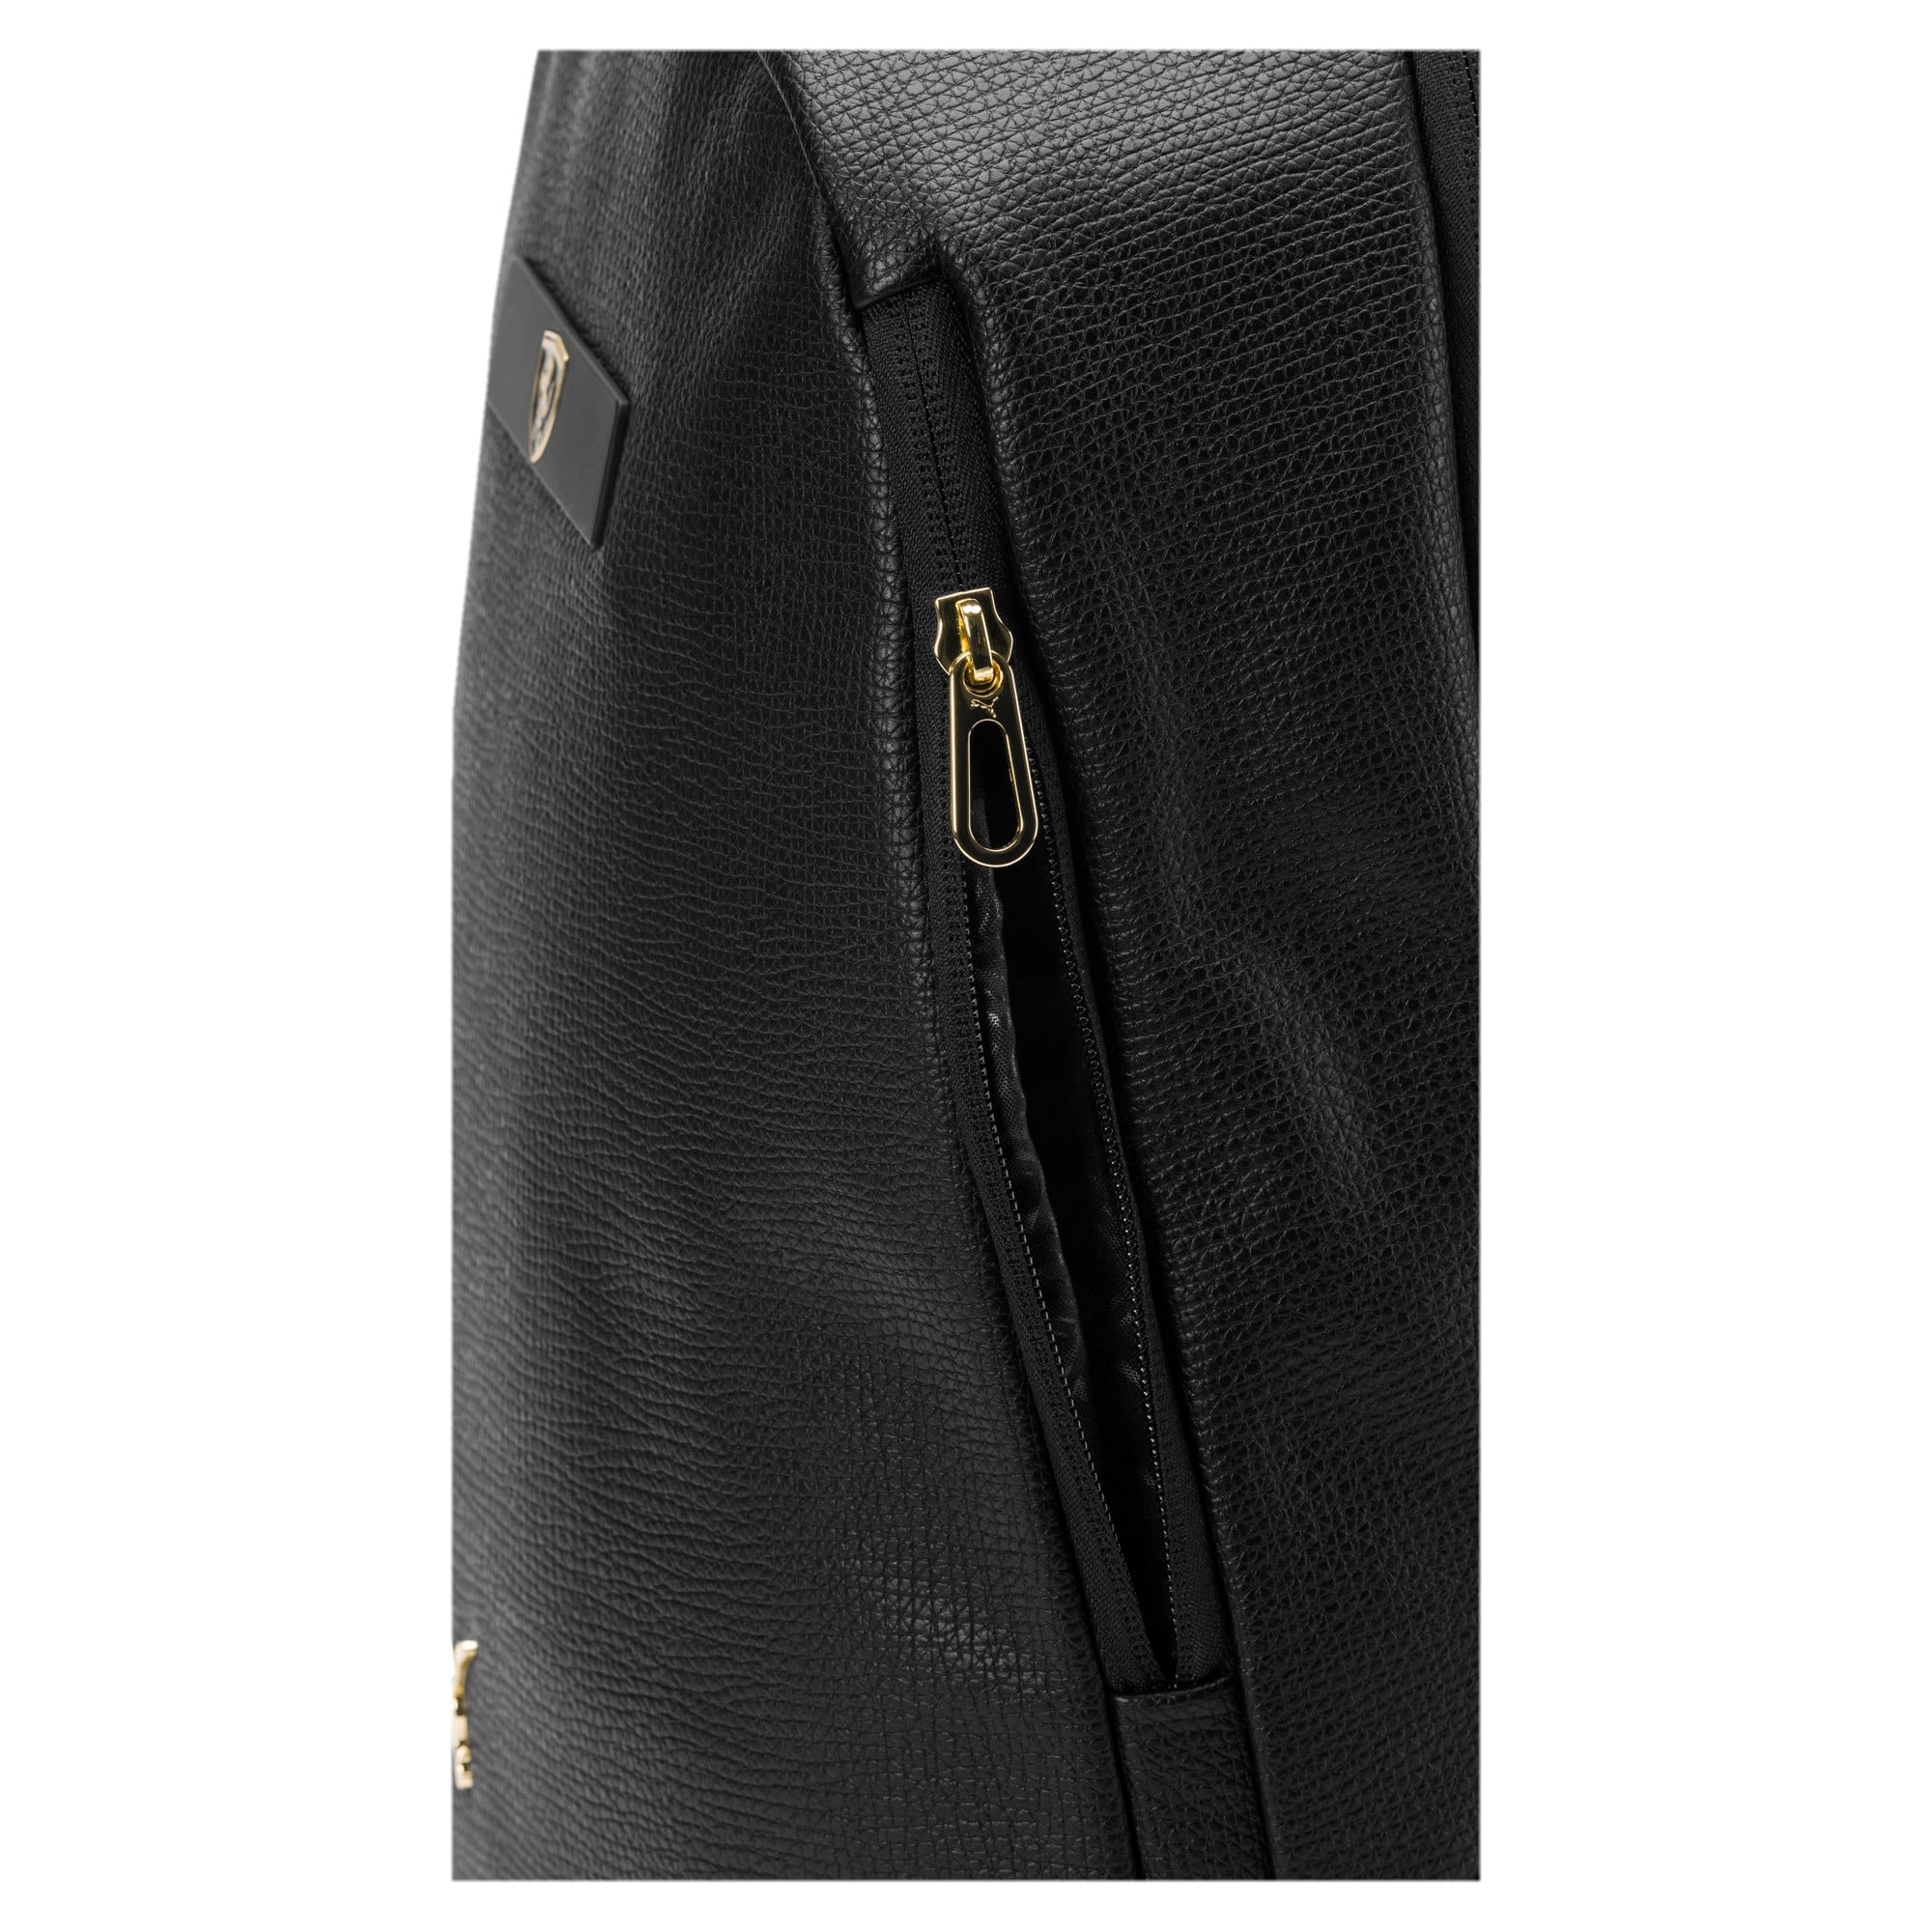 Thumbnail 4 of Ferrari Lifestyle Zainetto Rucksack, Puma Black, medium